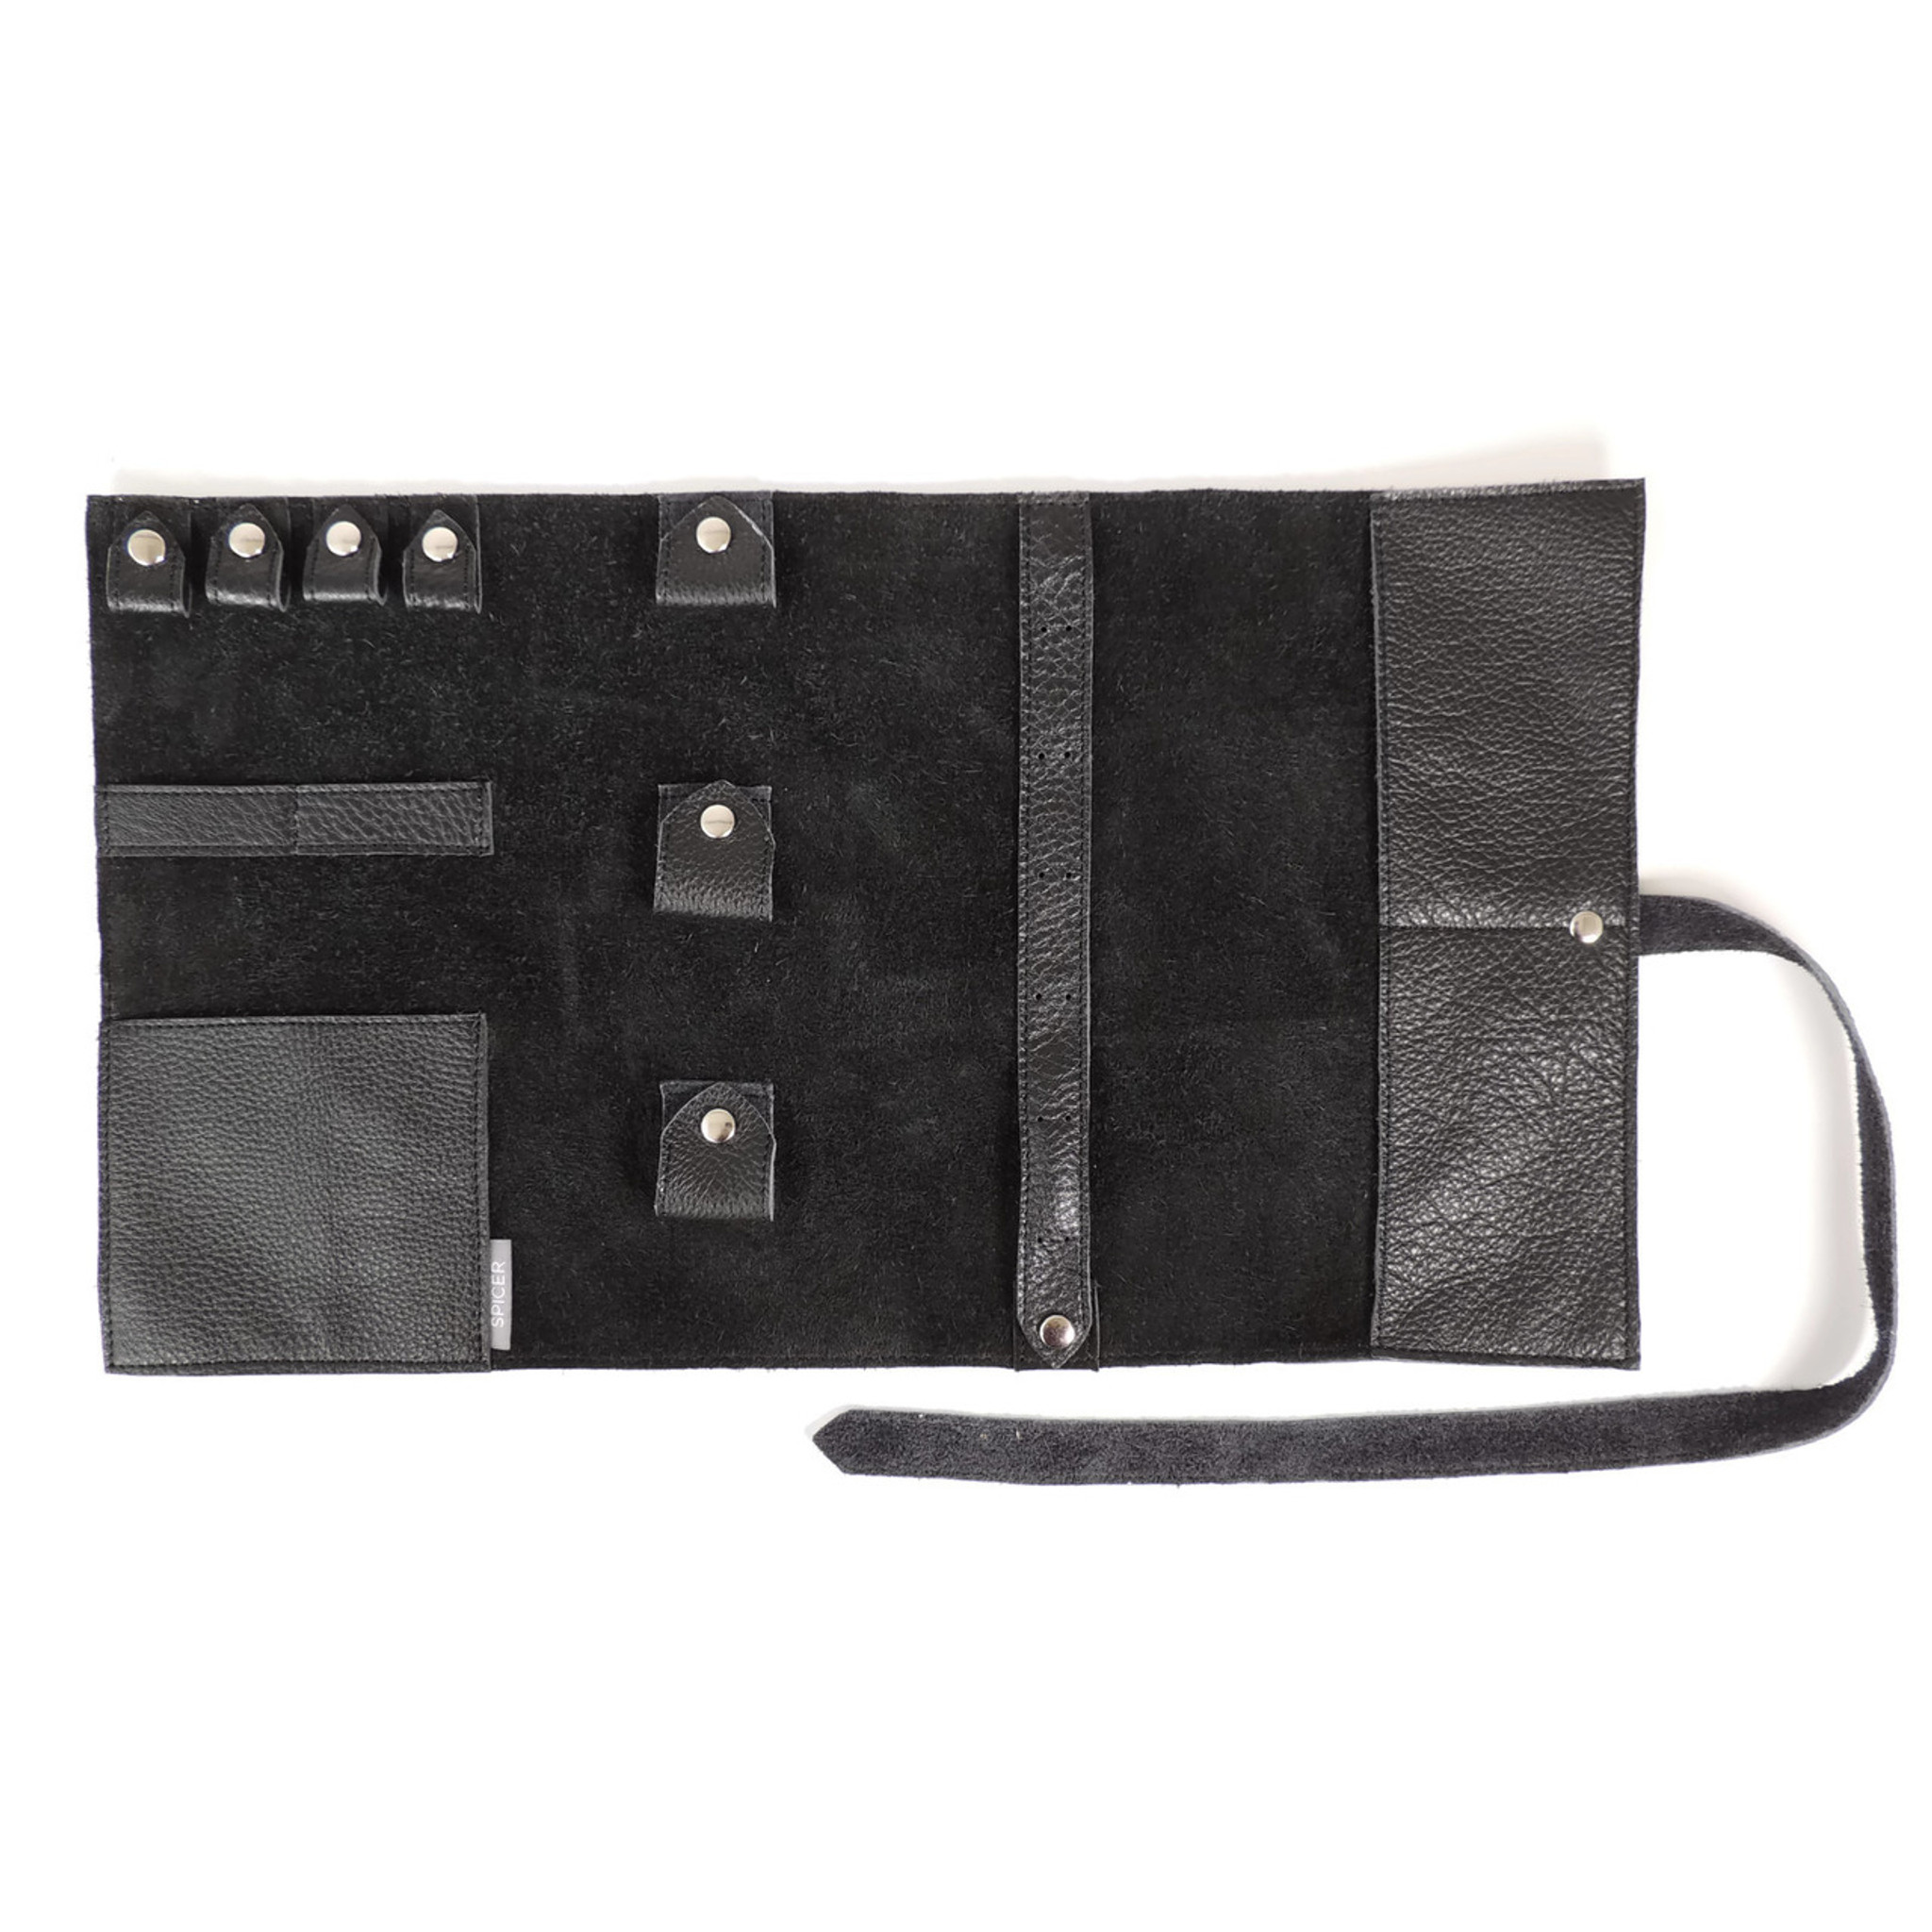 Jewelry Leather Roll in Black